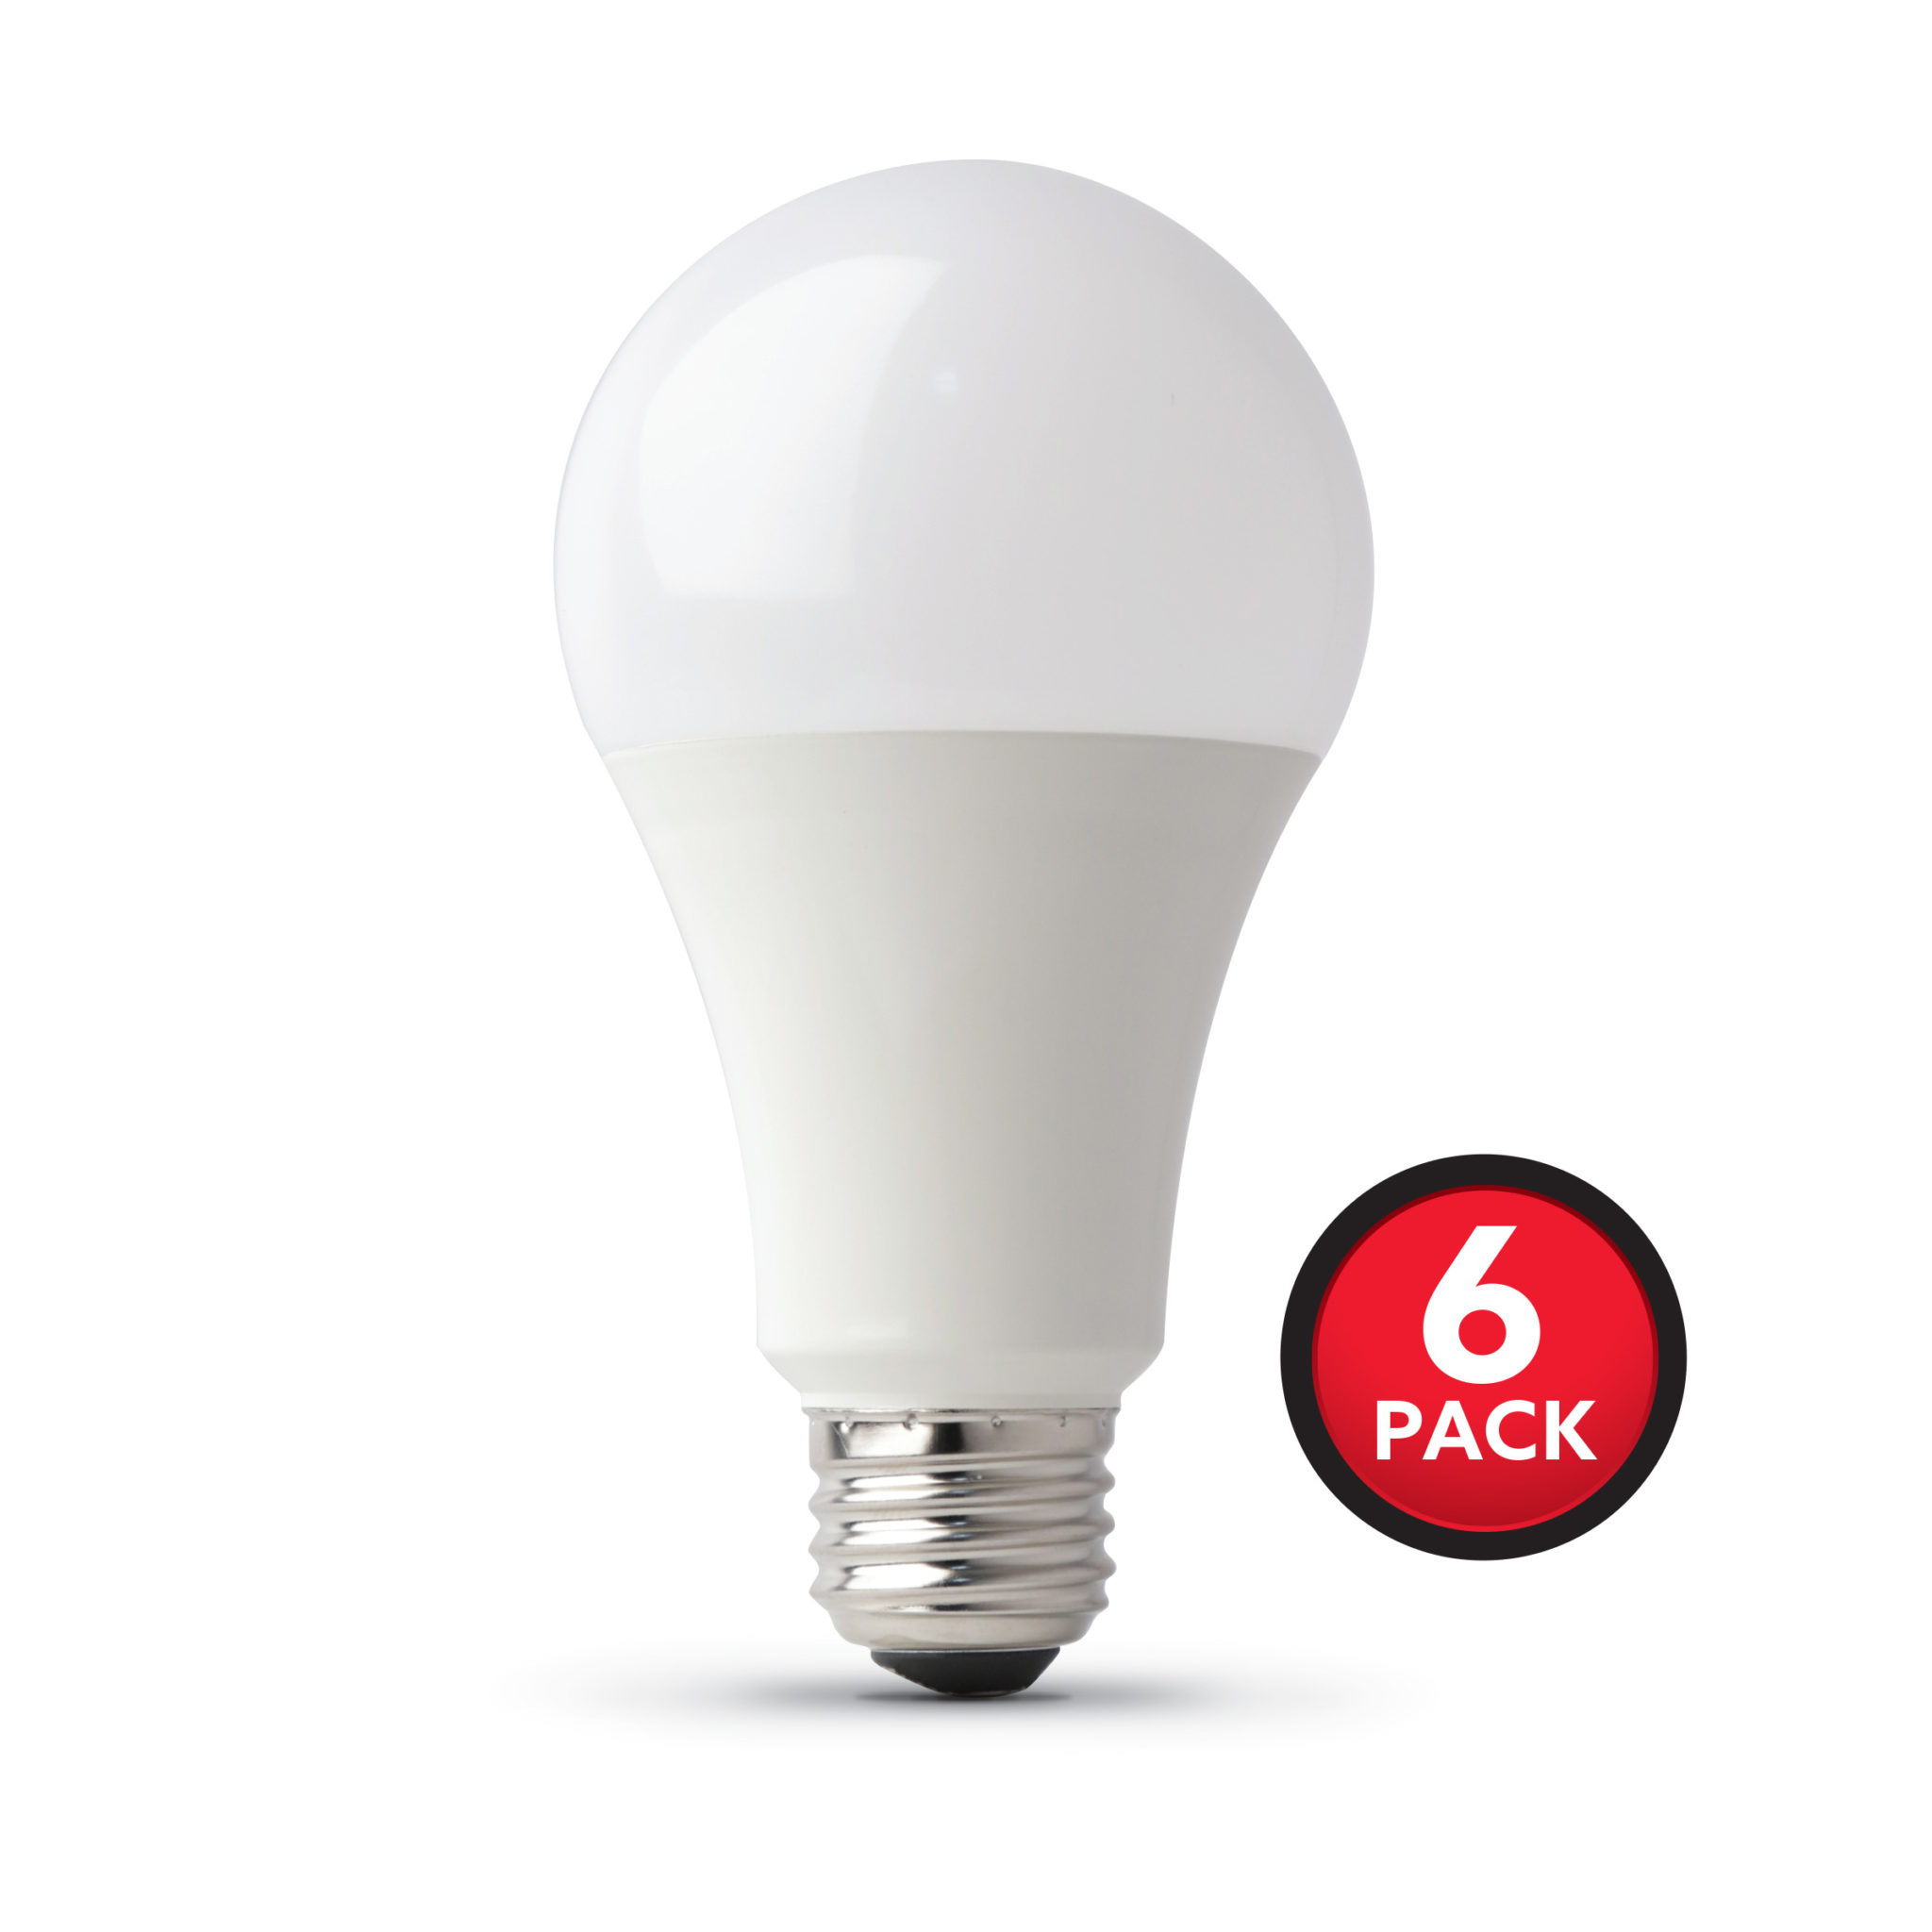 General Electric Led Bulbs: 1600 Lumen 3000K Non-Dimmable LED